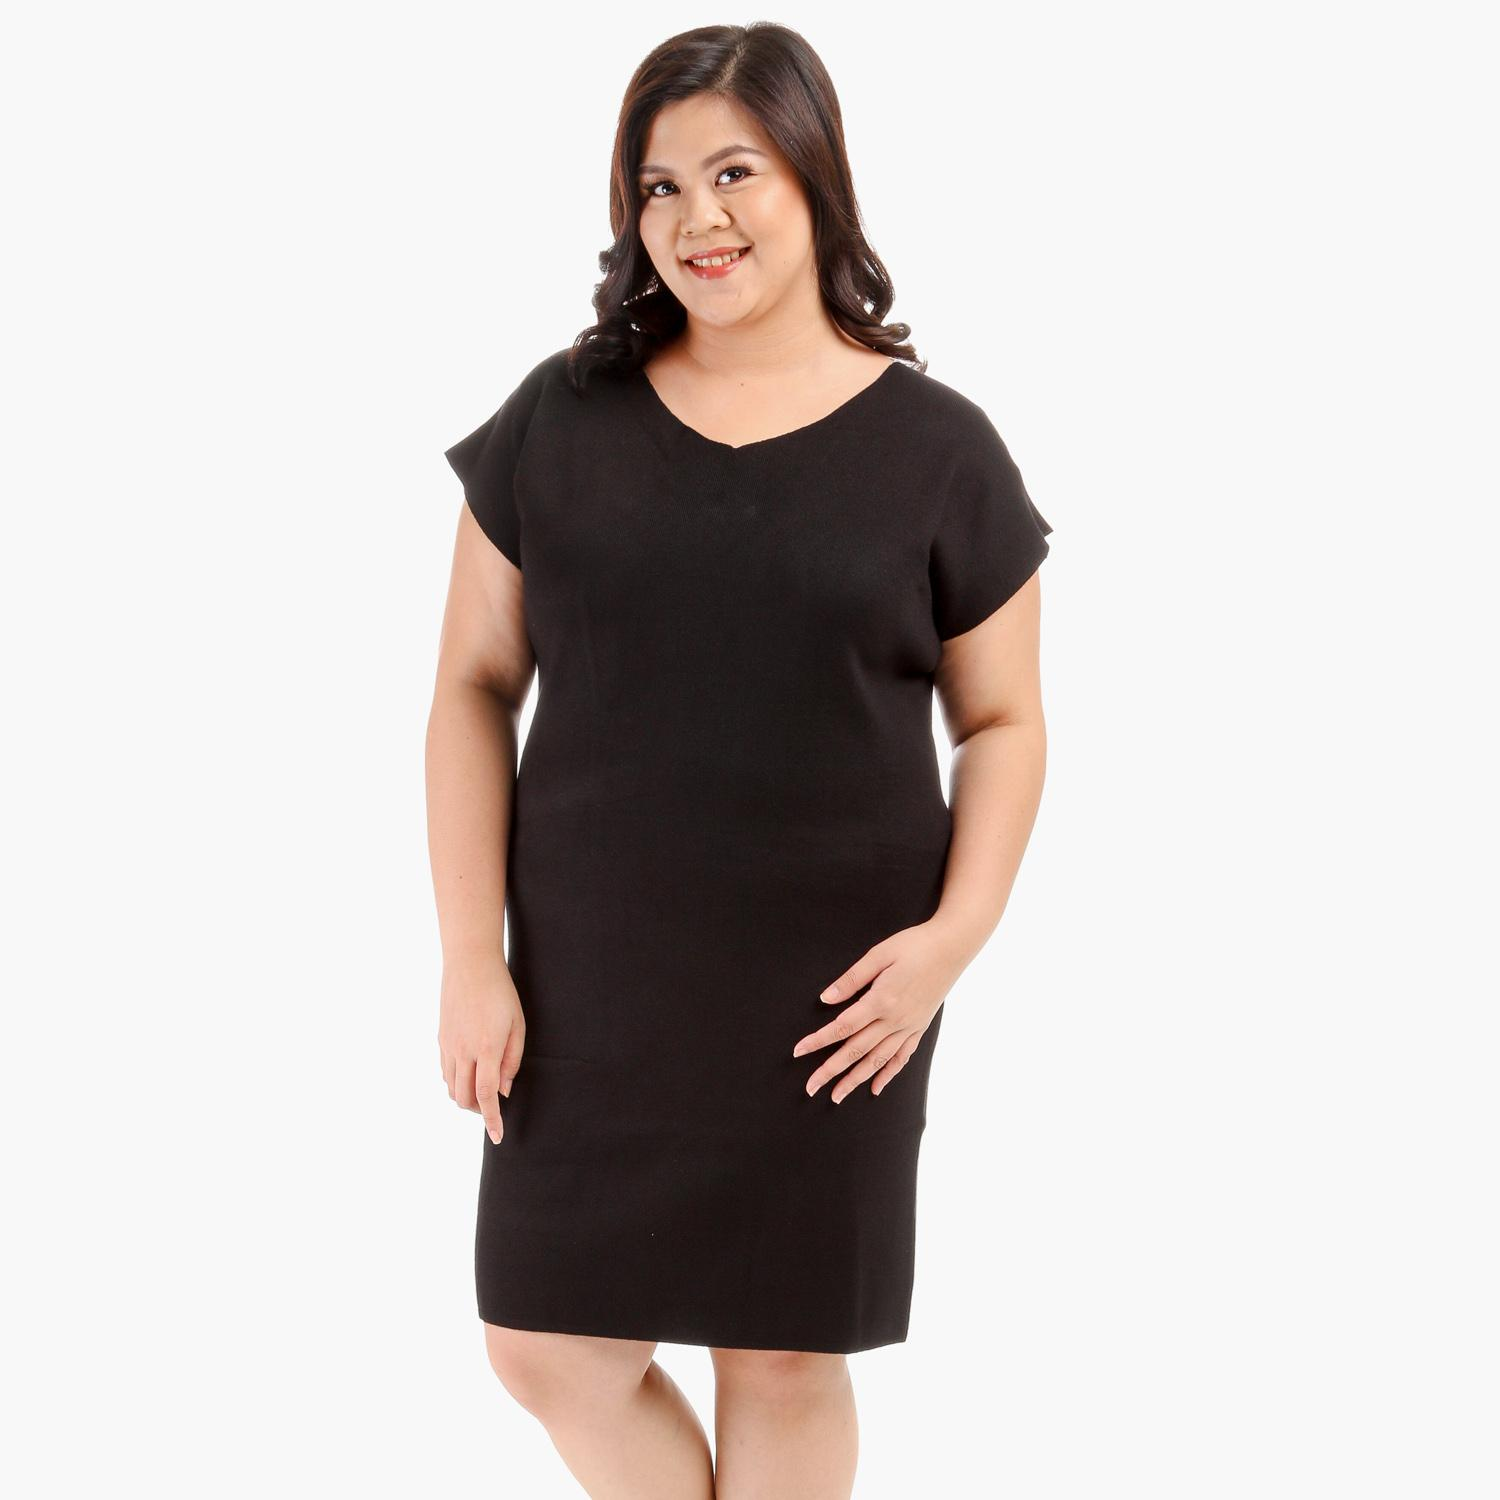 17170fdfbde Plus Size Cocktail Dress For Sale Philippines